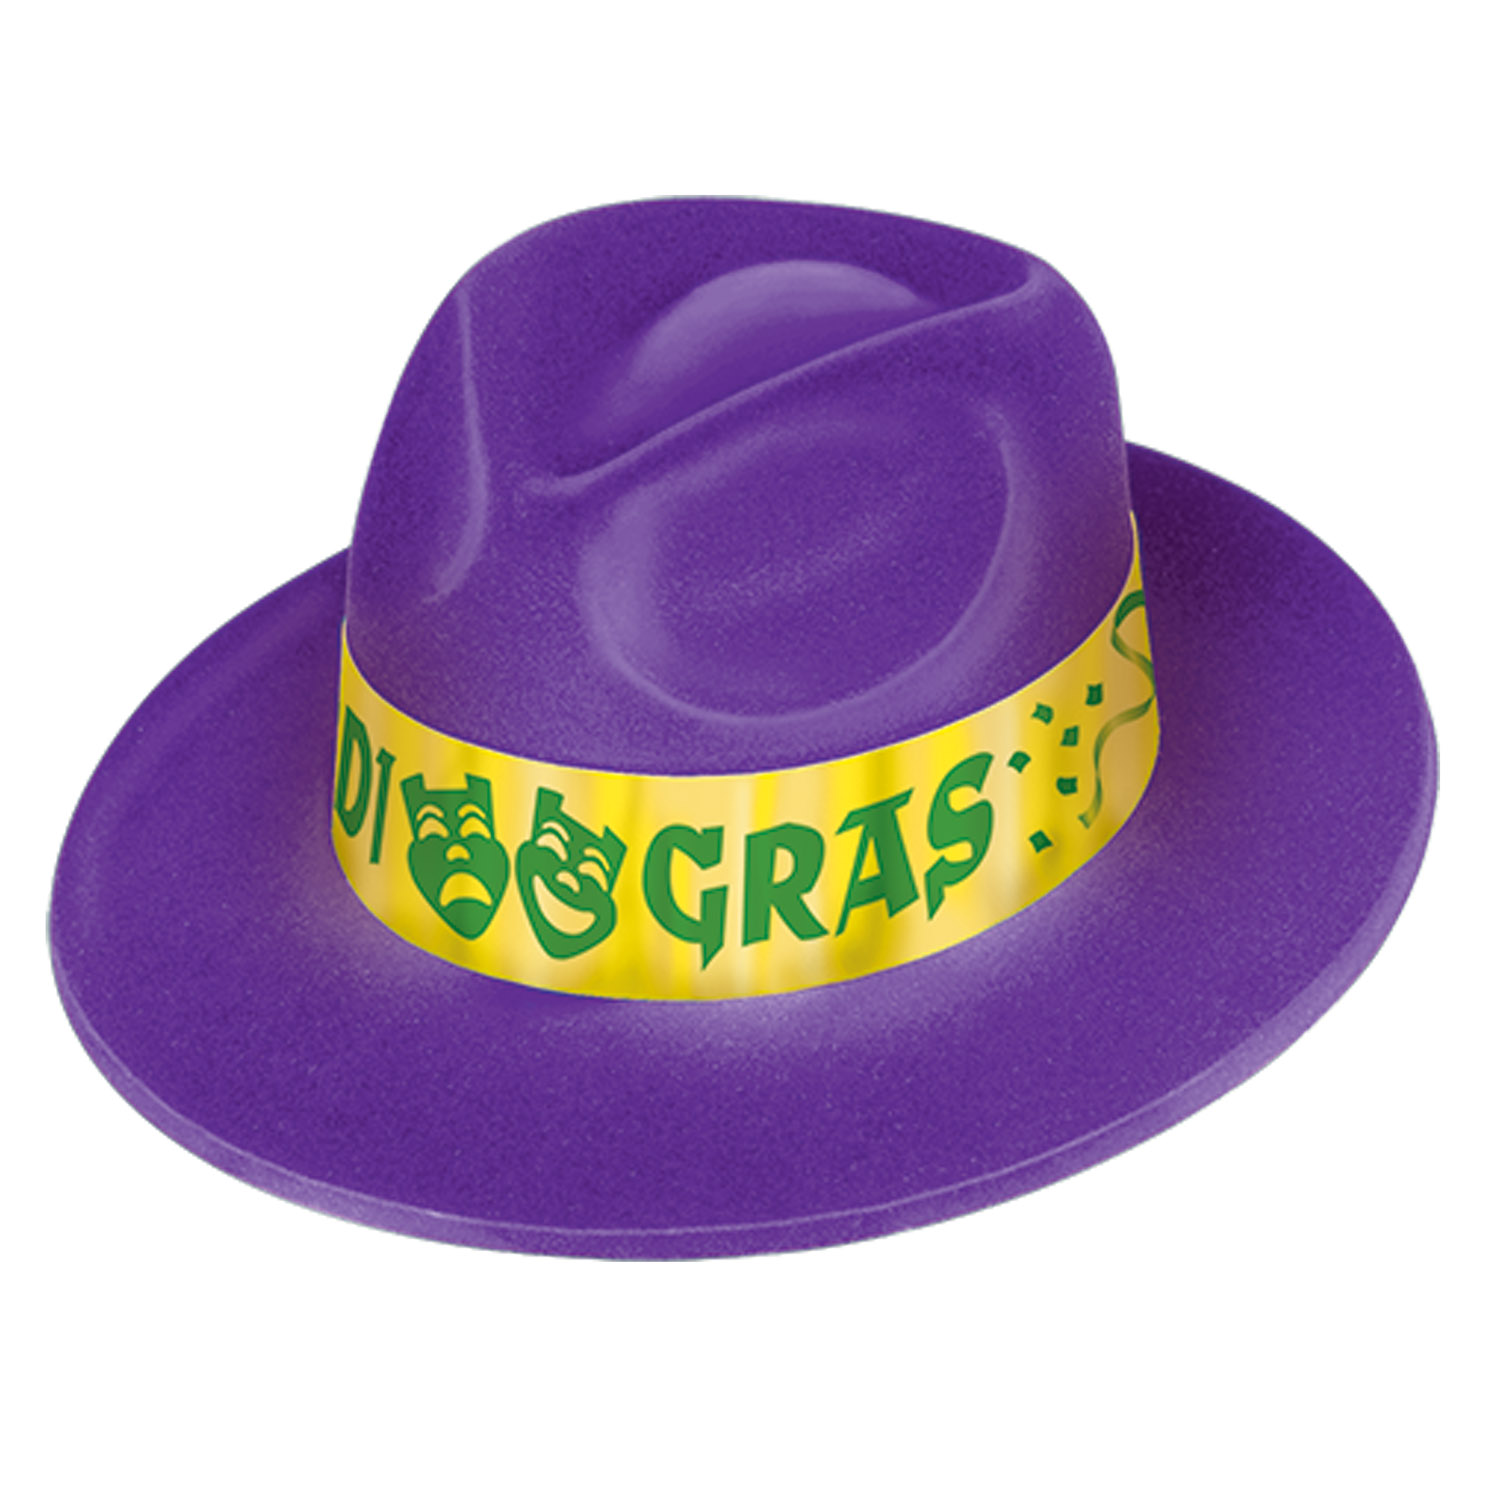 f2d82ceaee77c 25 Units of Mardi Gras Velour Fedora one size fits most - Party Hats    Tiara - at - alltimetrading.com